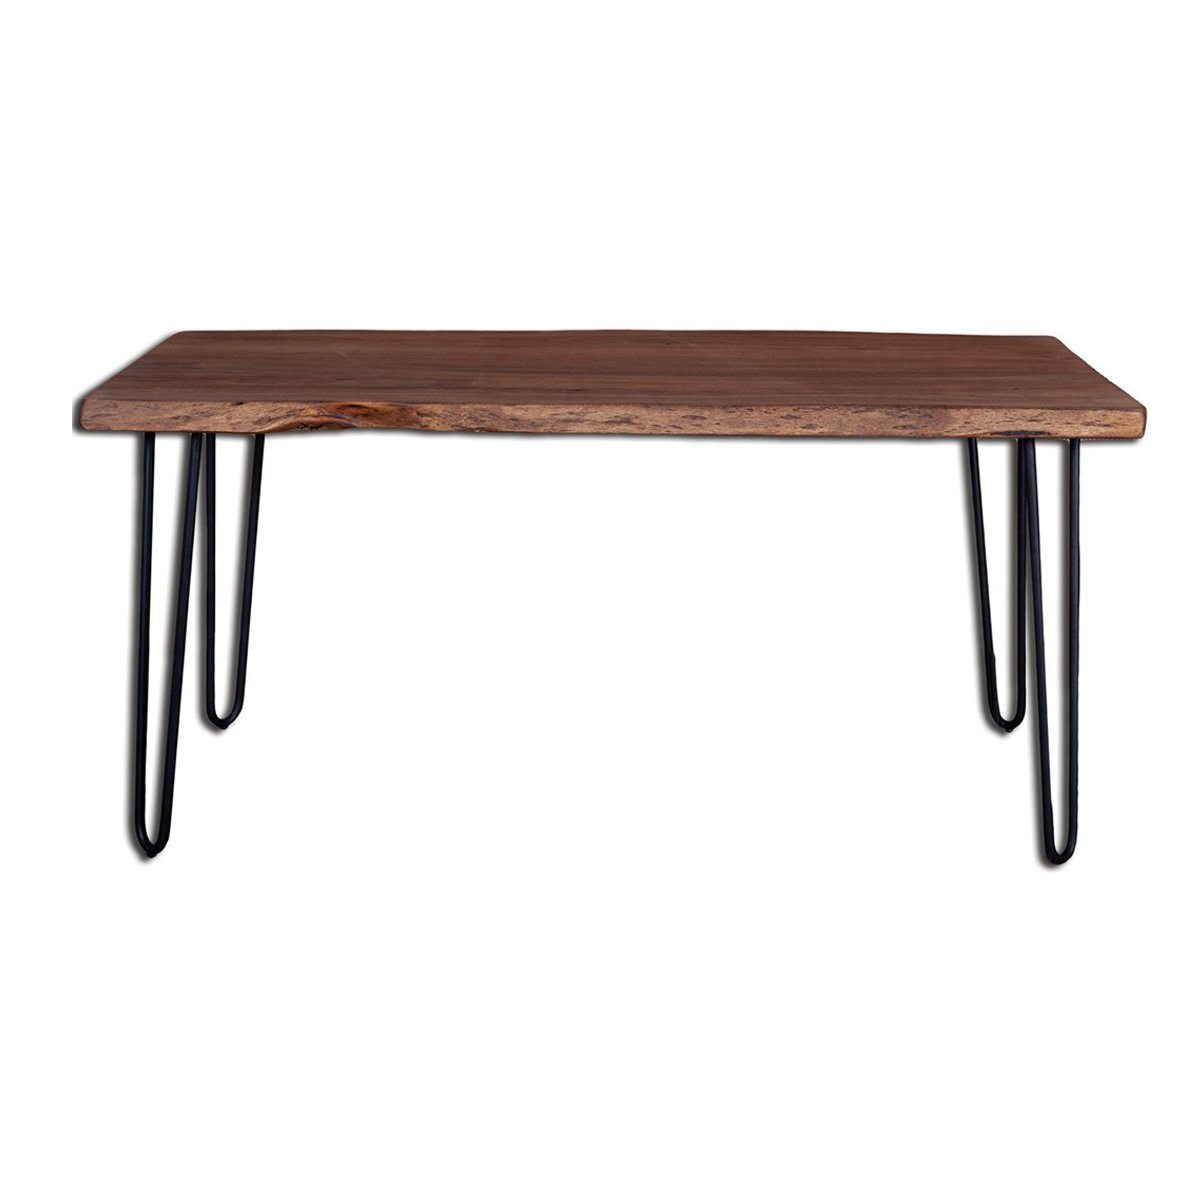 Solid Acacia Wood Organic Dining Table